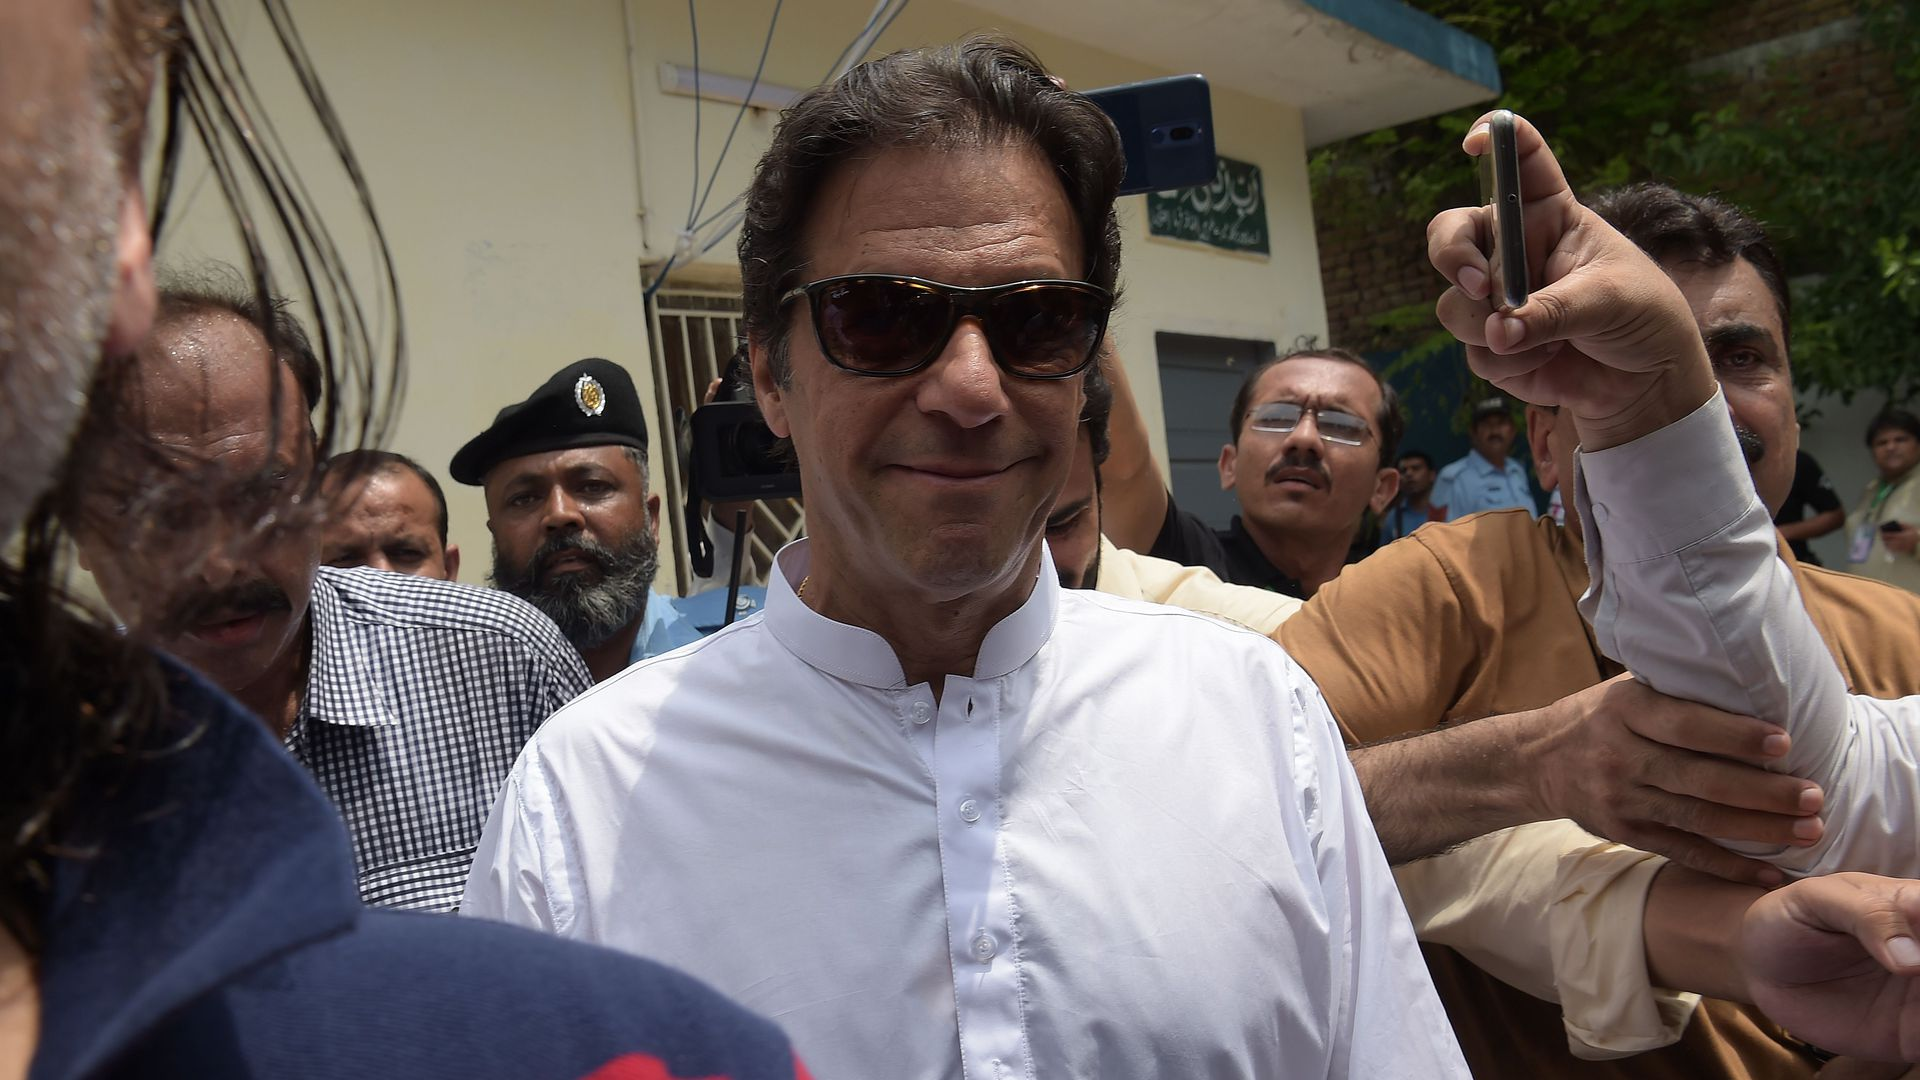 Imran Khan smiling with sunglasses on.